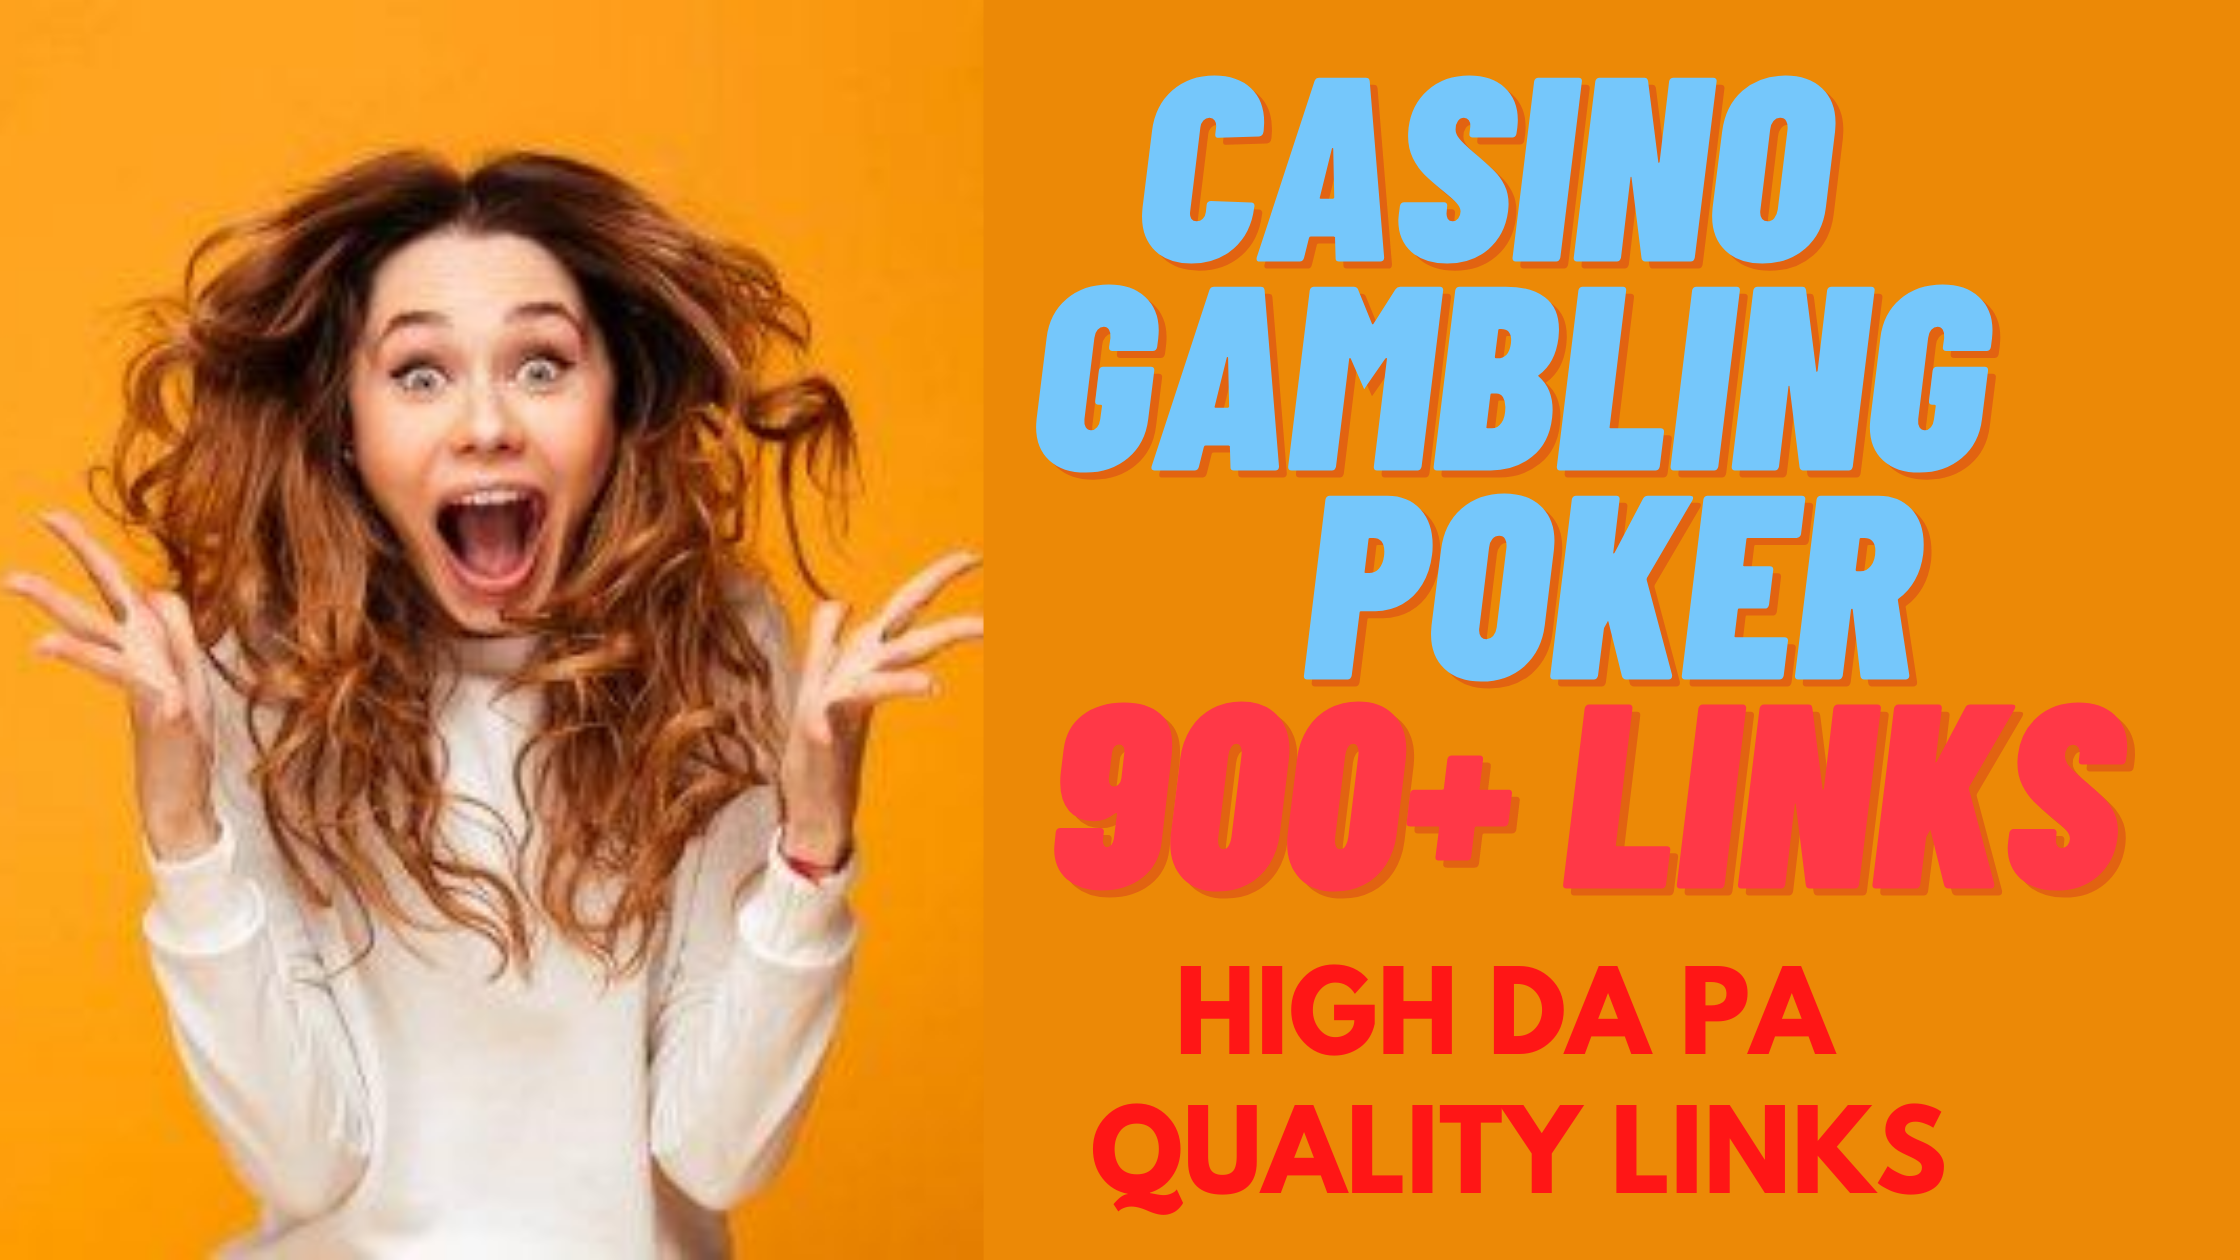 I Will Create ADULT & CASINO 925+ High DA PA Tired Backlinks to Boost Your Google Ranking Quickly